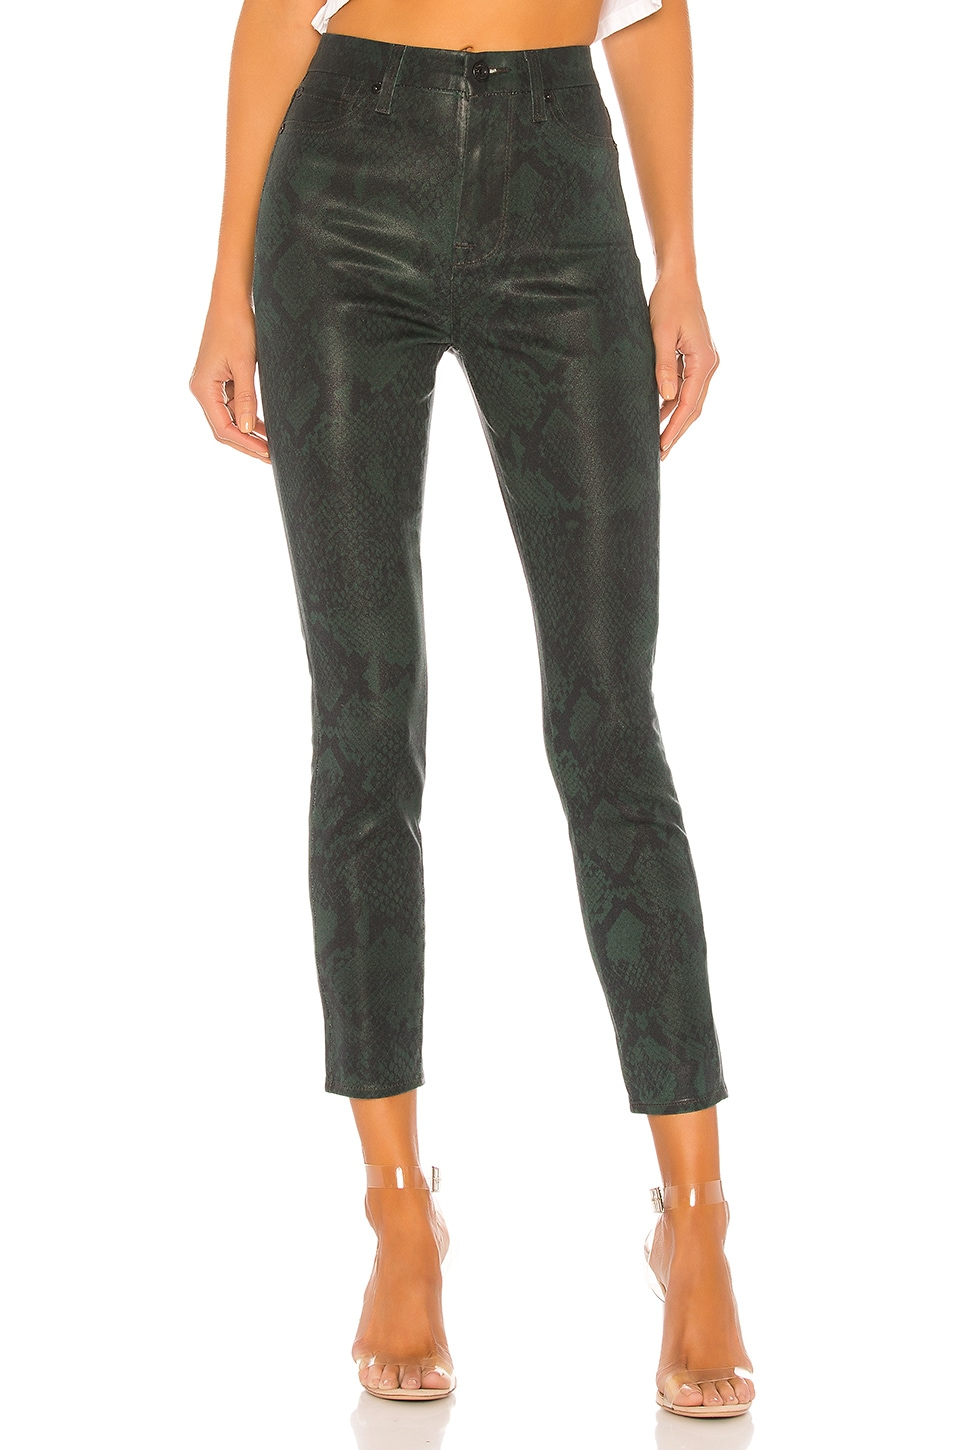 7 For All Mankind Coated High Waist Ankle Skinny in Green Python